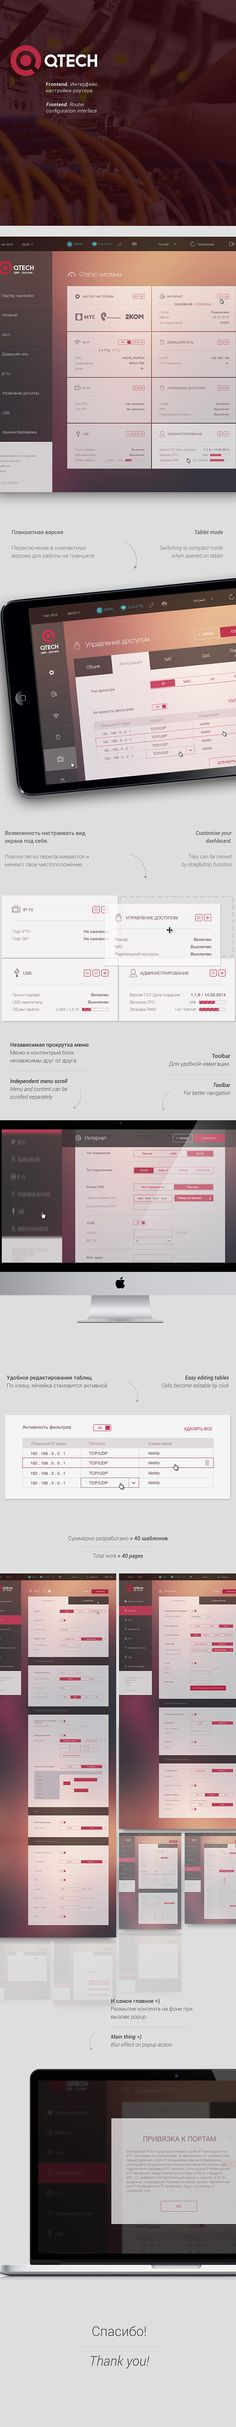 QTECH - Router configuration interface by Bogdan Kazakov, via Behance